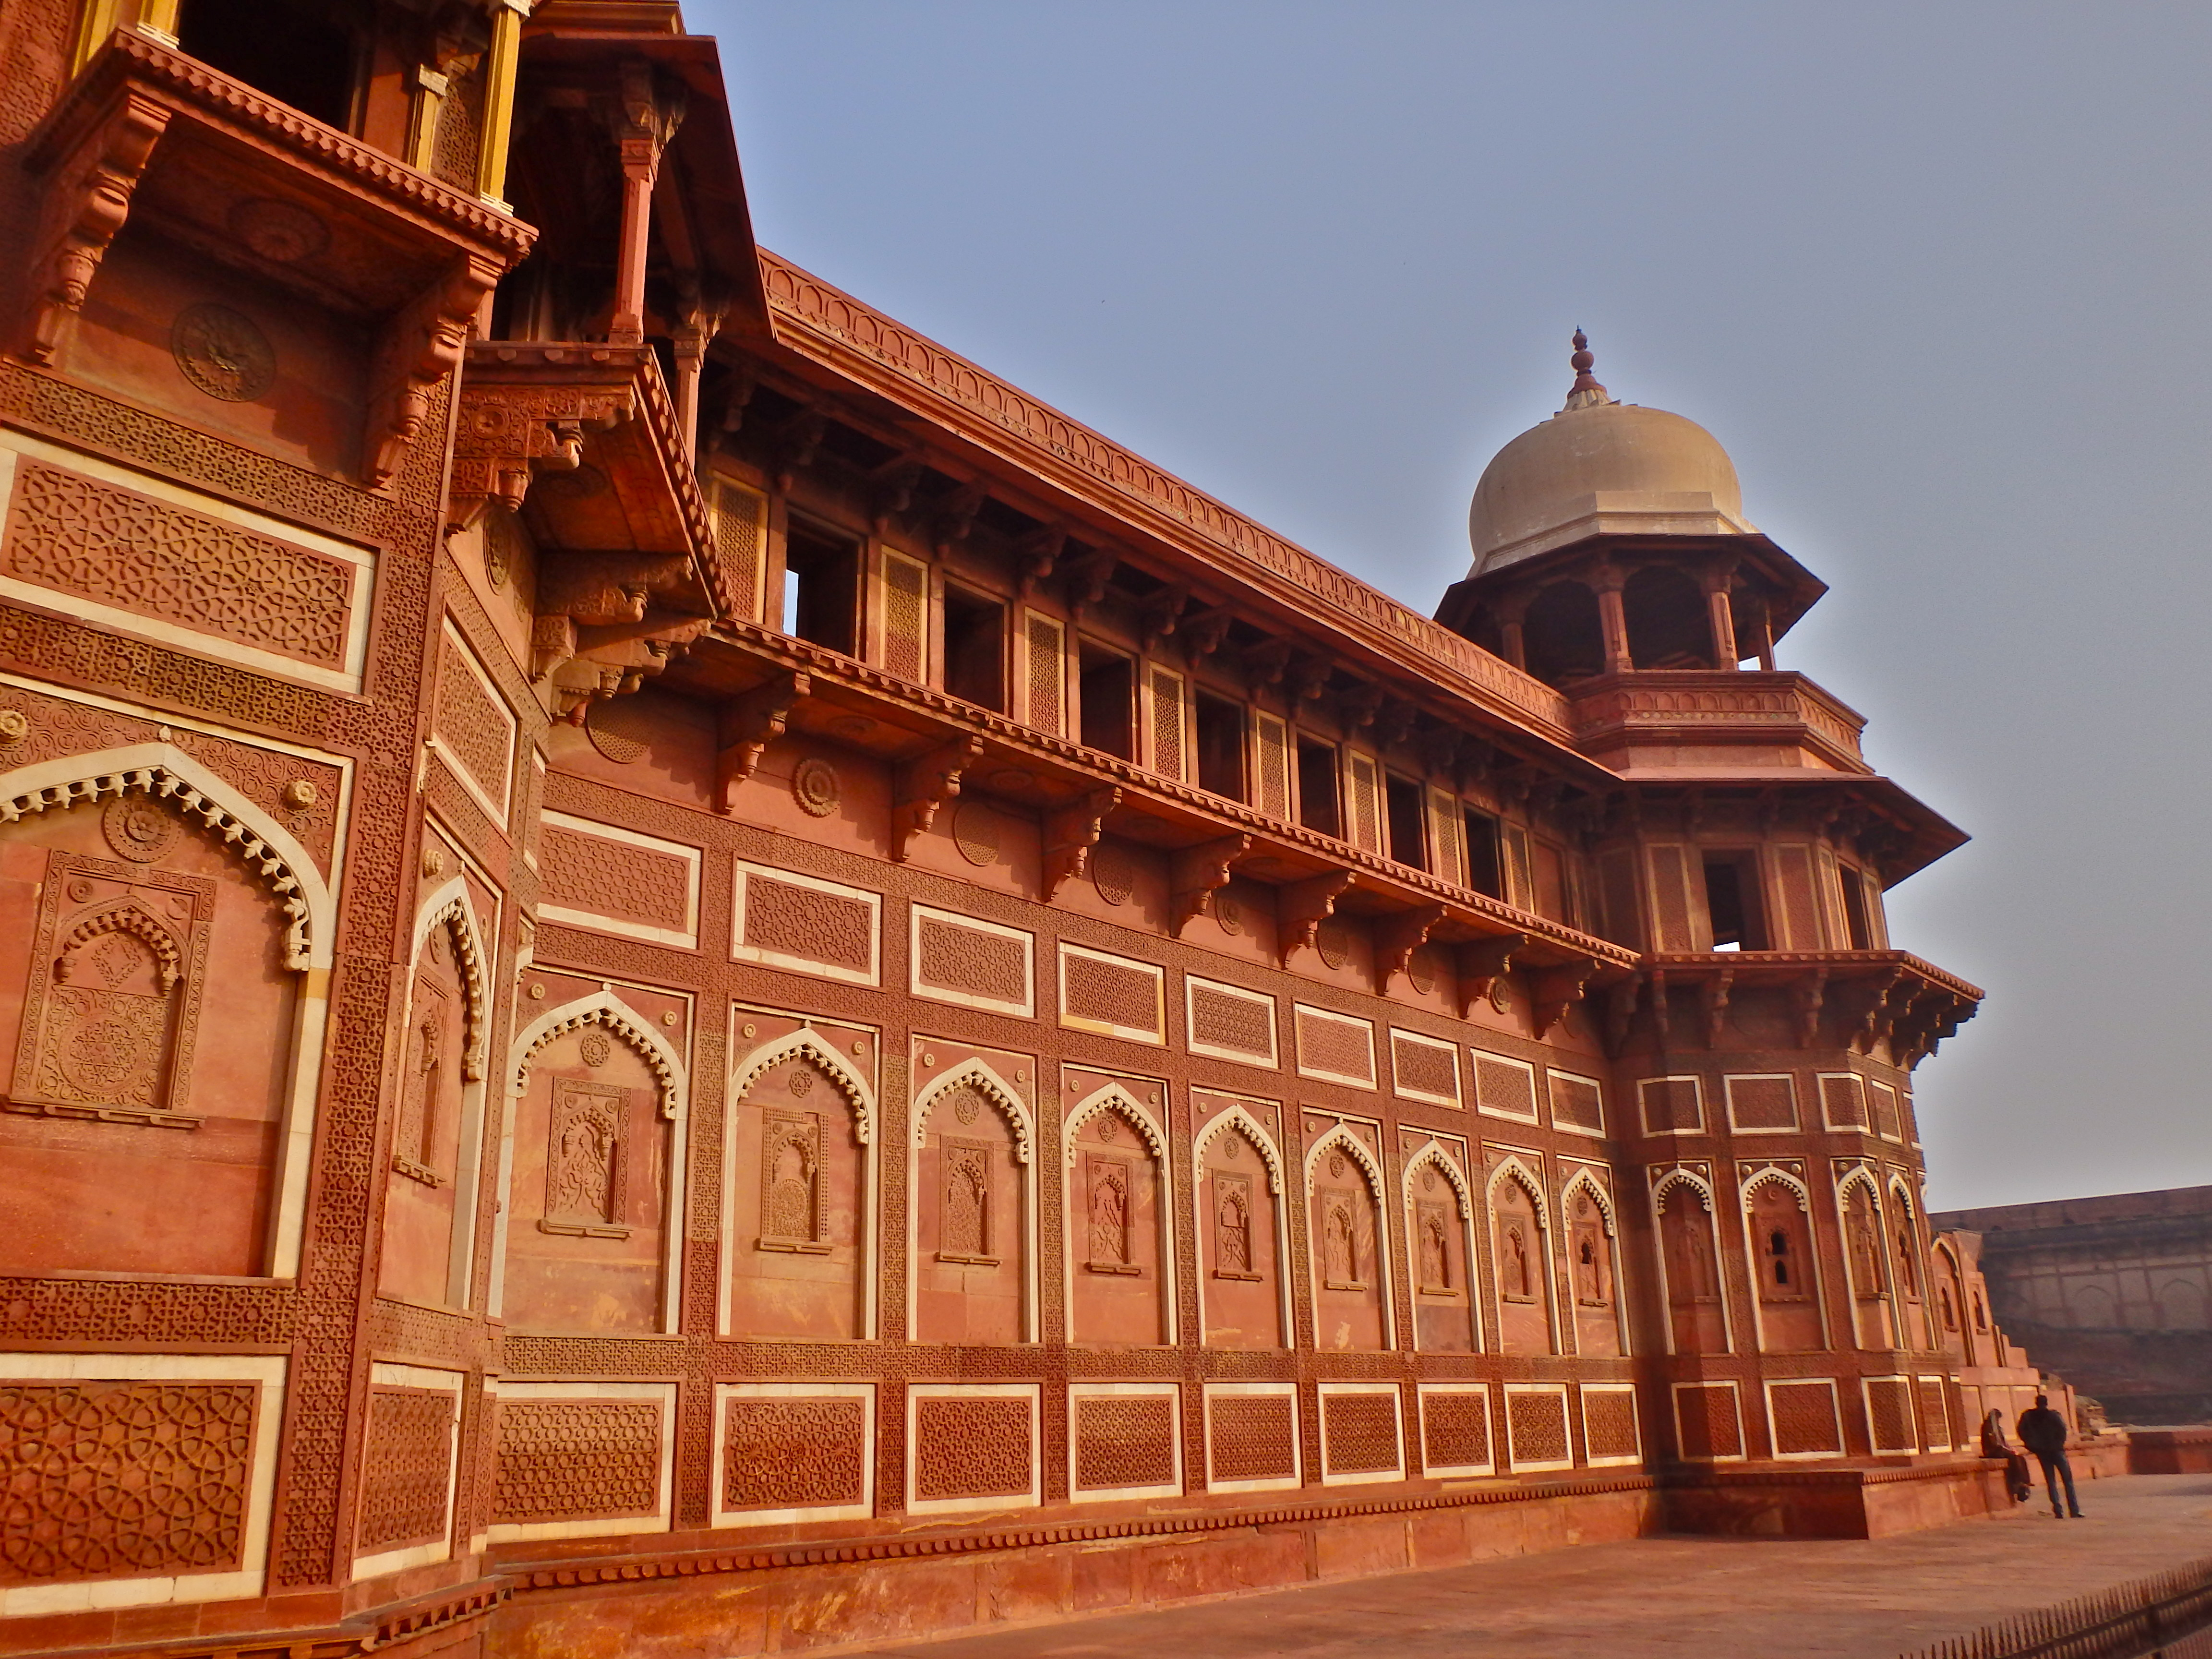 best things to do in agra india where to visit in agra india what to see in agra besides the taj mahal